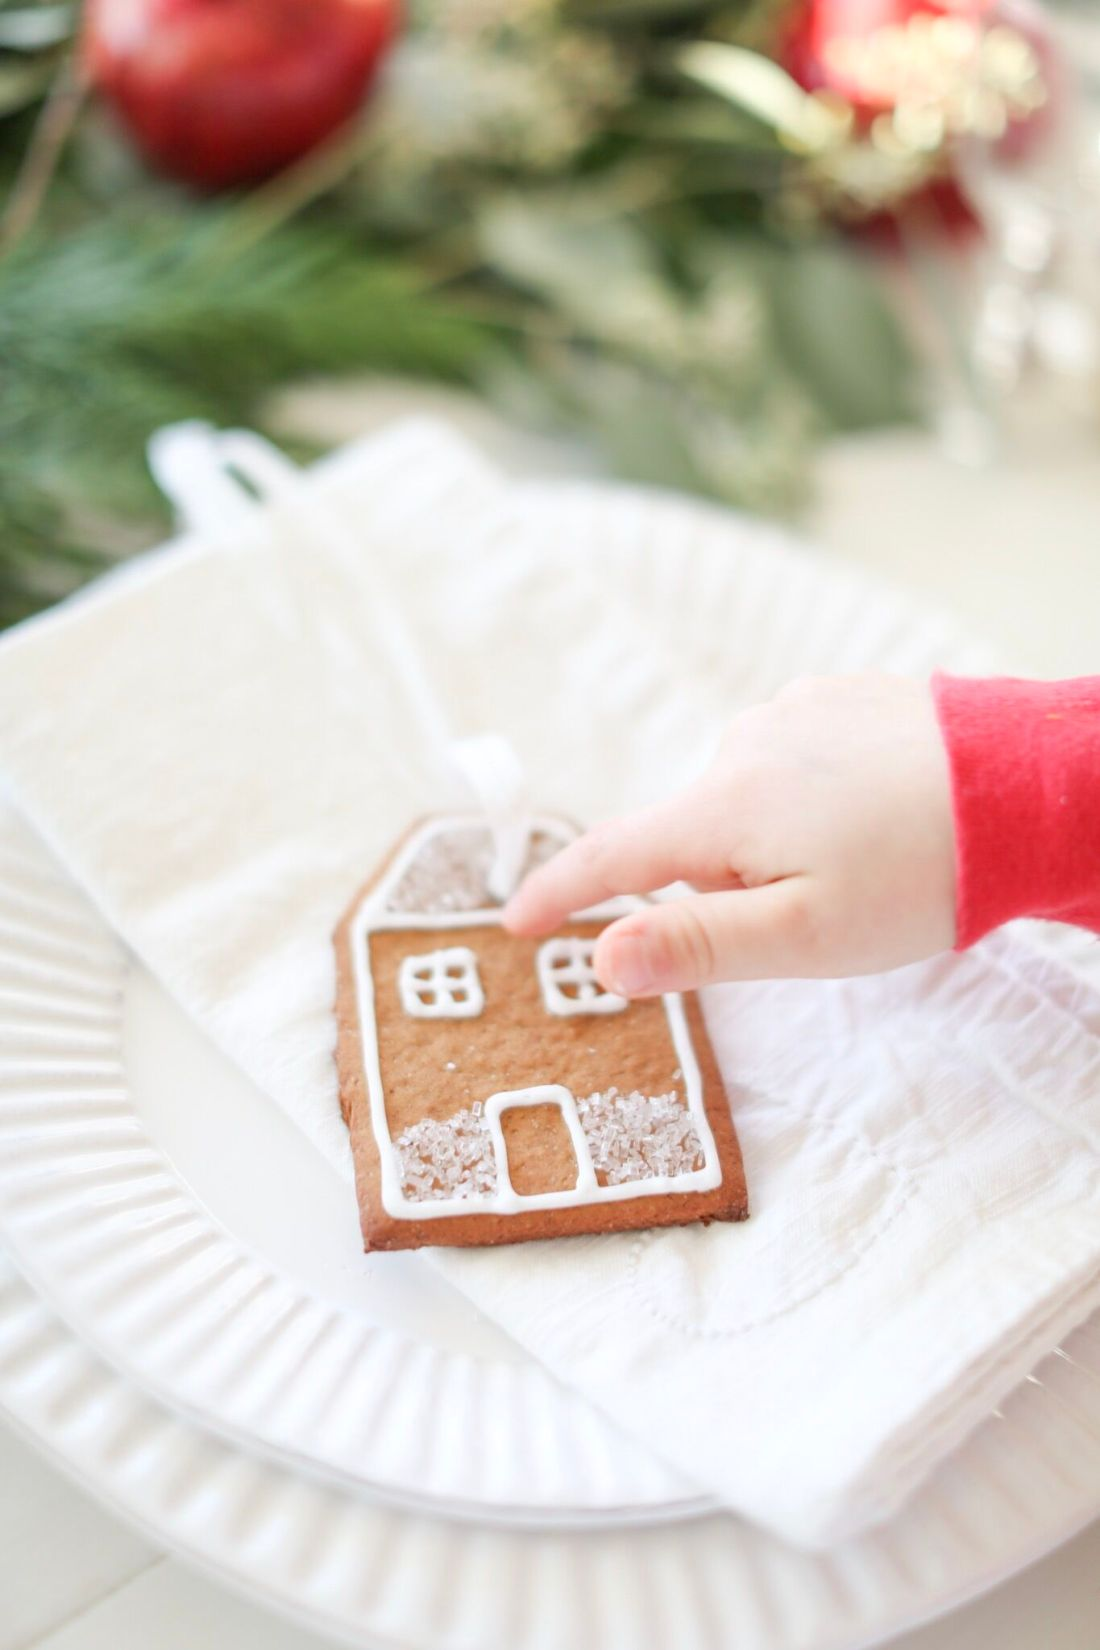 Gingerbread Cut outs for Christmas ornaments or place settings